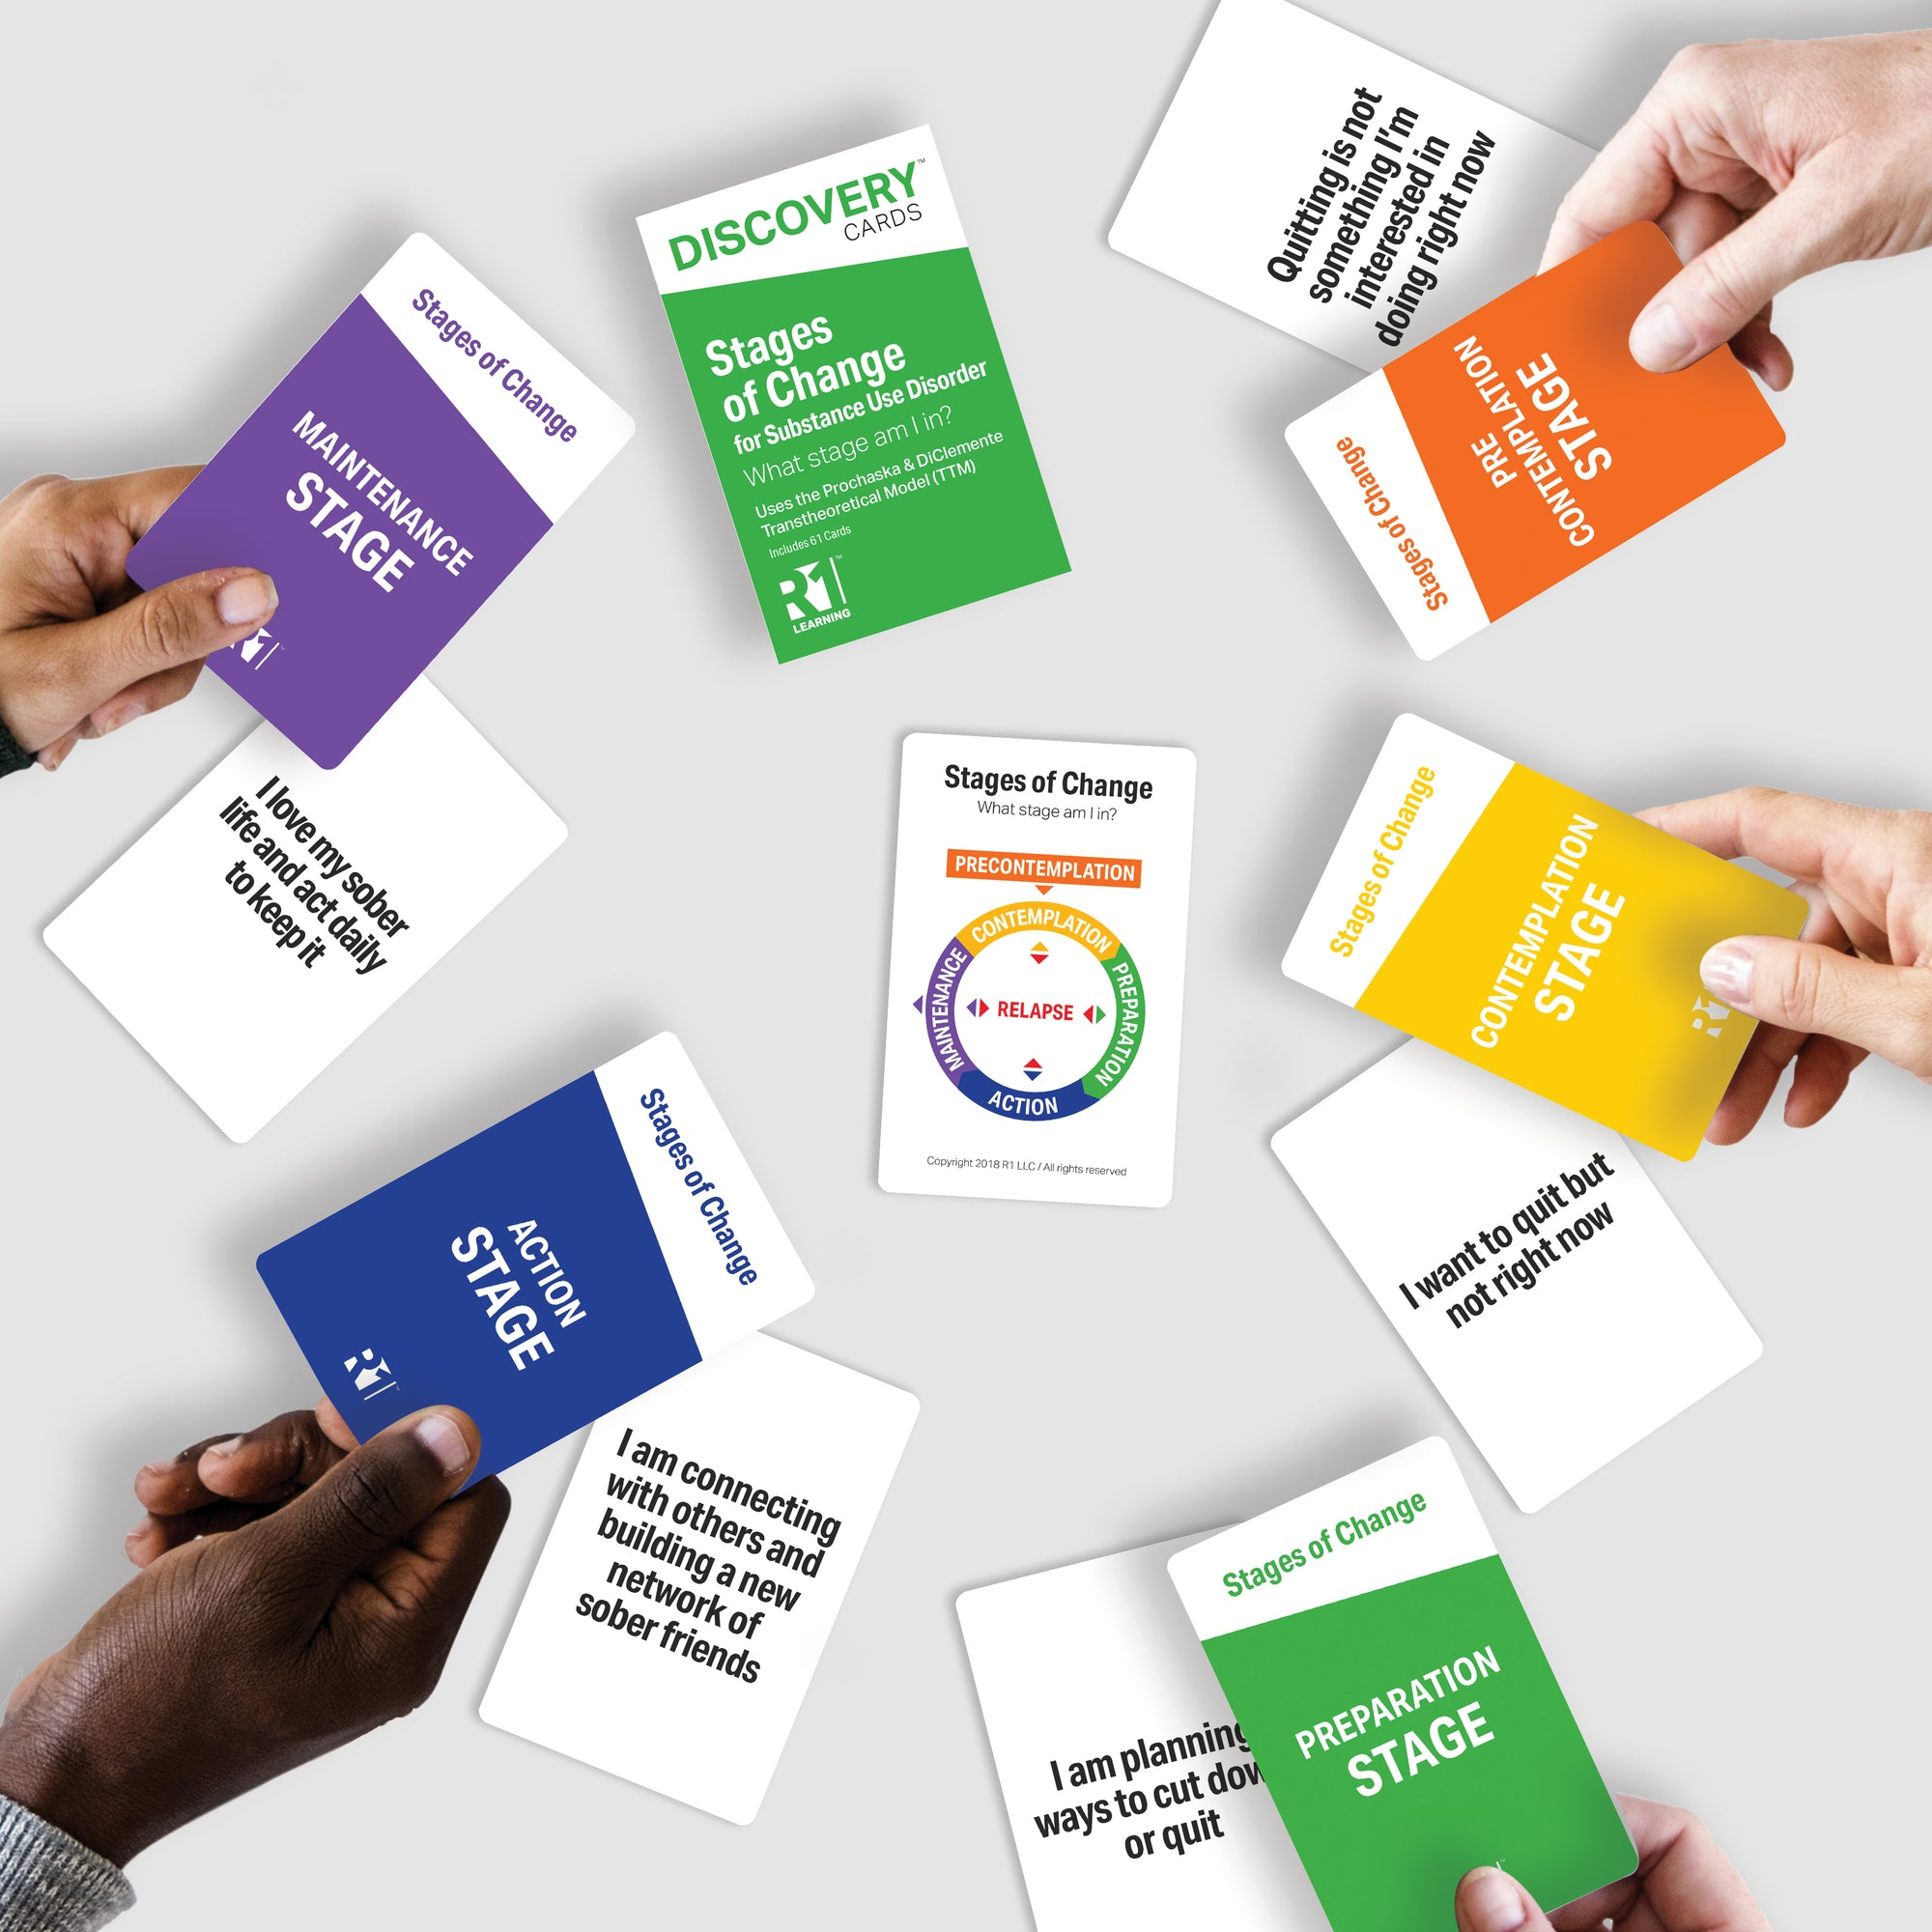 Stages of Change Group Kit — 12 decks